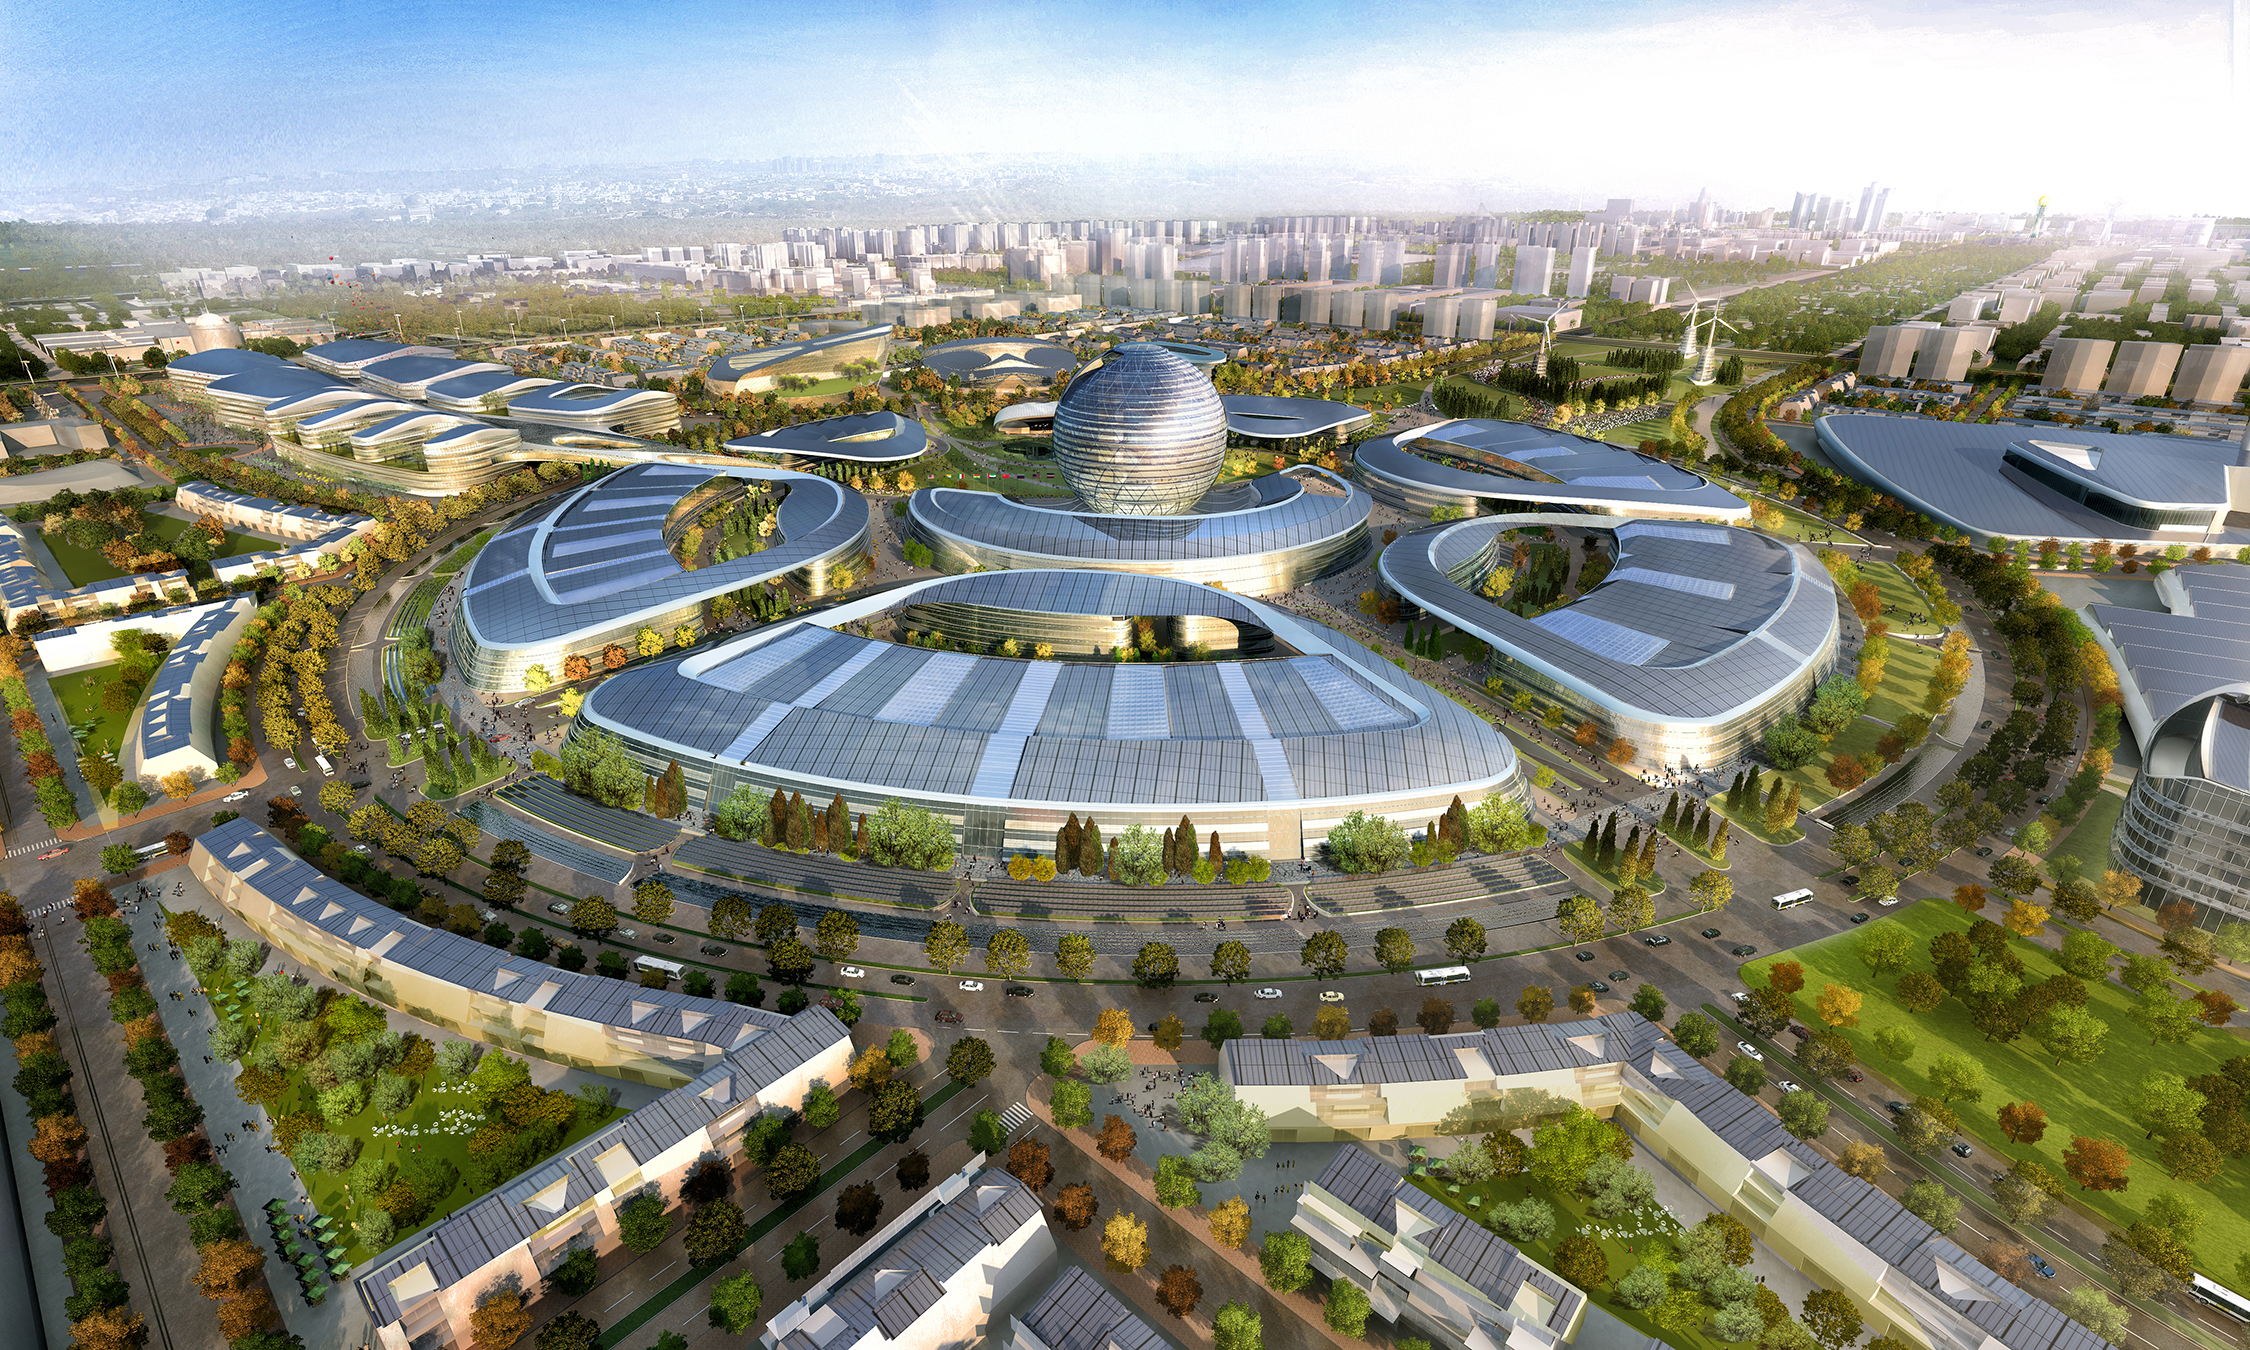 kazakhstan-astana-expo-city-adrian-smith-gordon-gill-energy-9